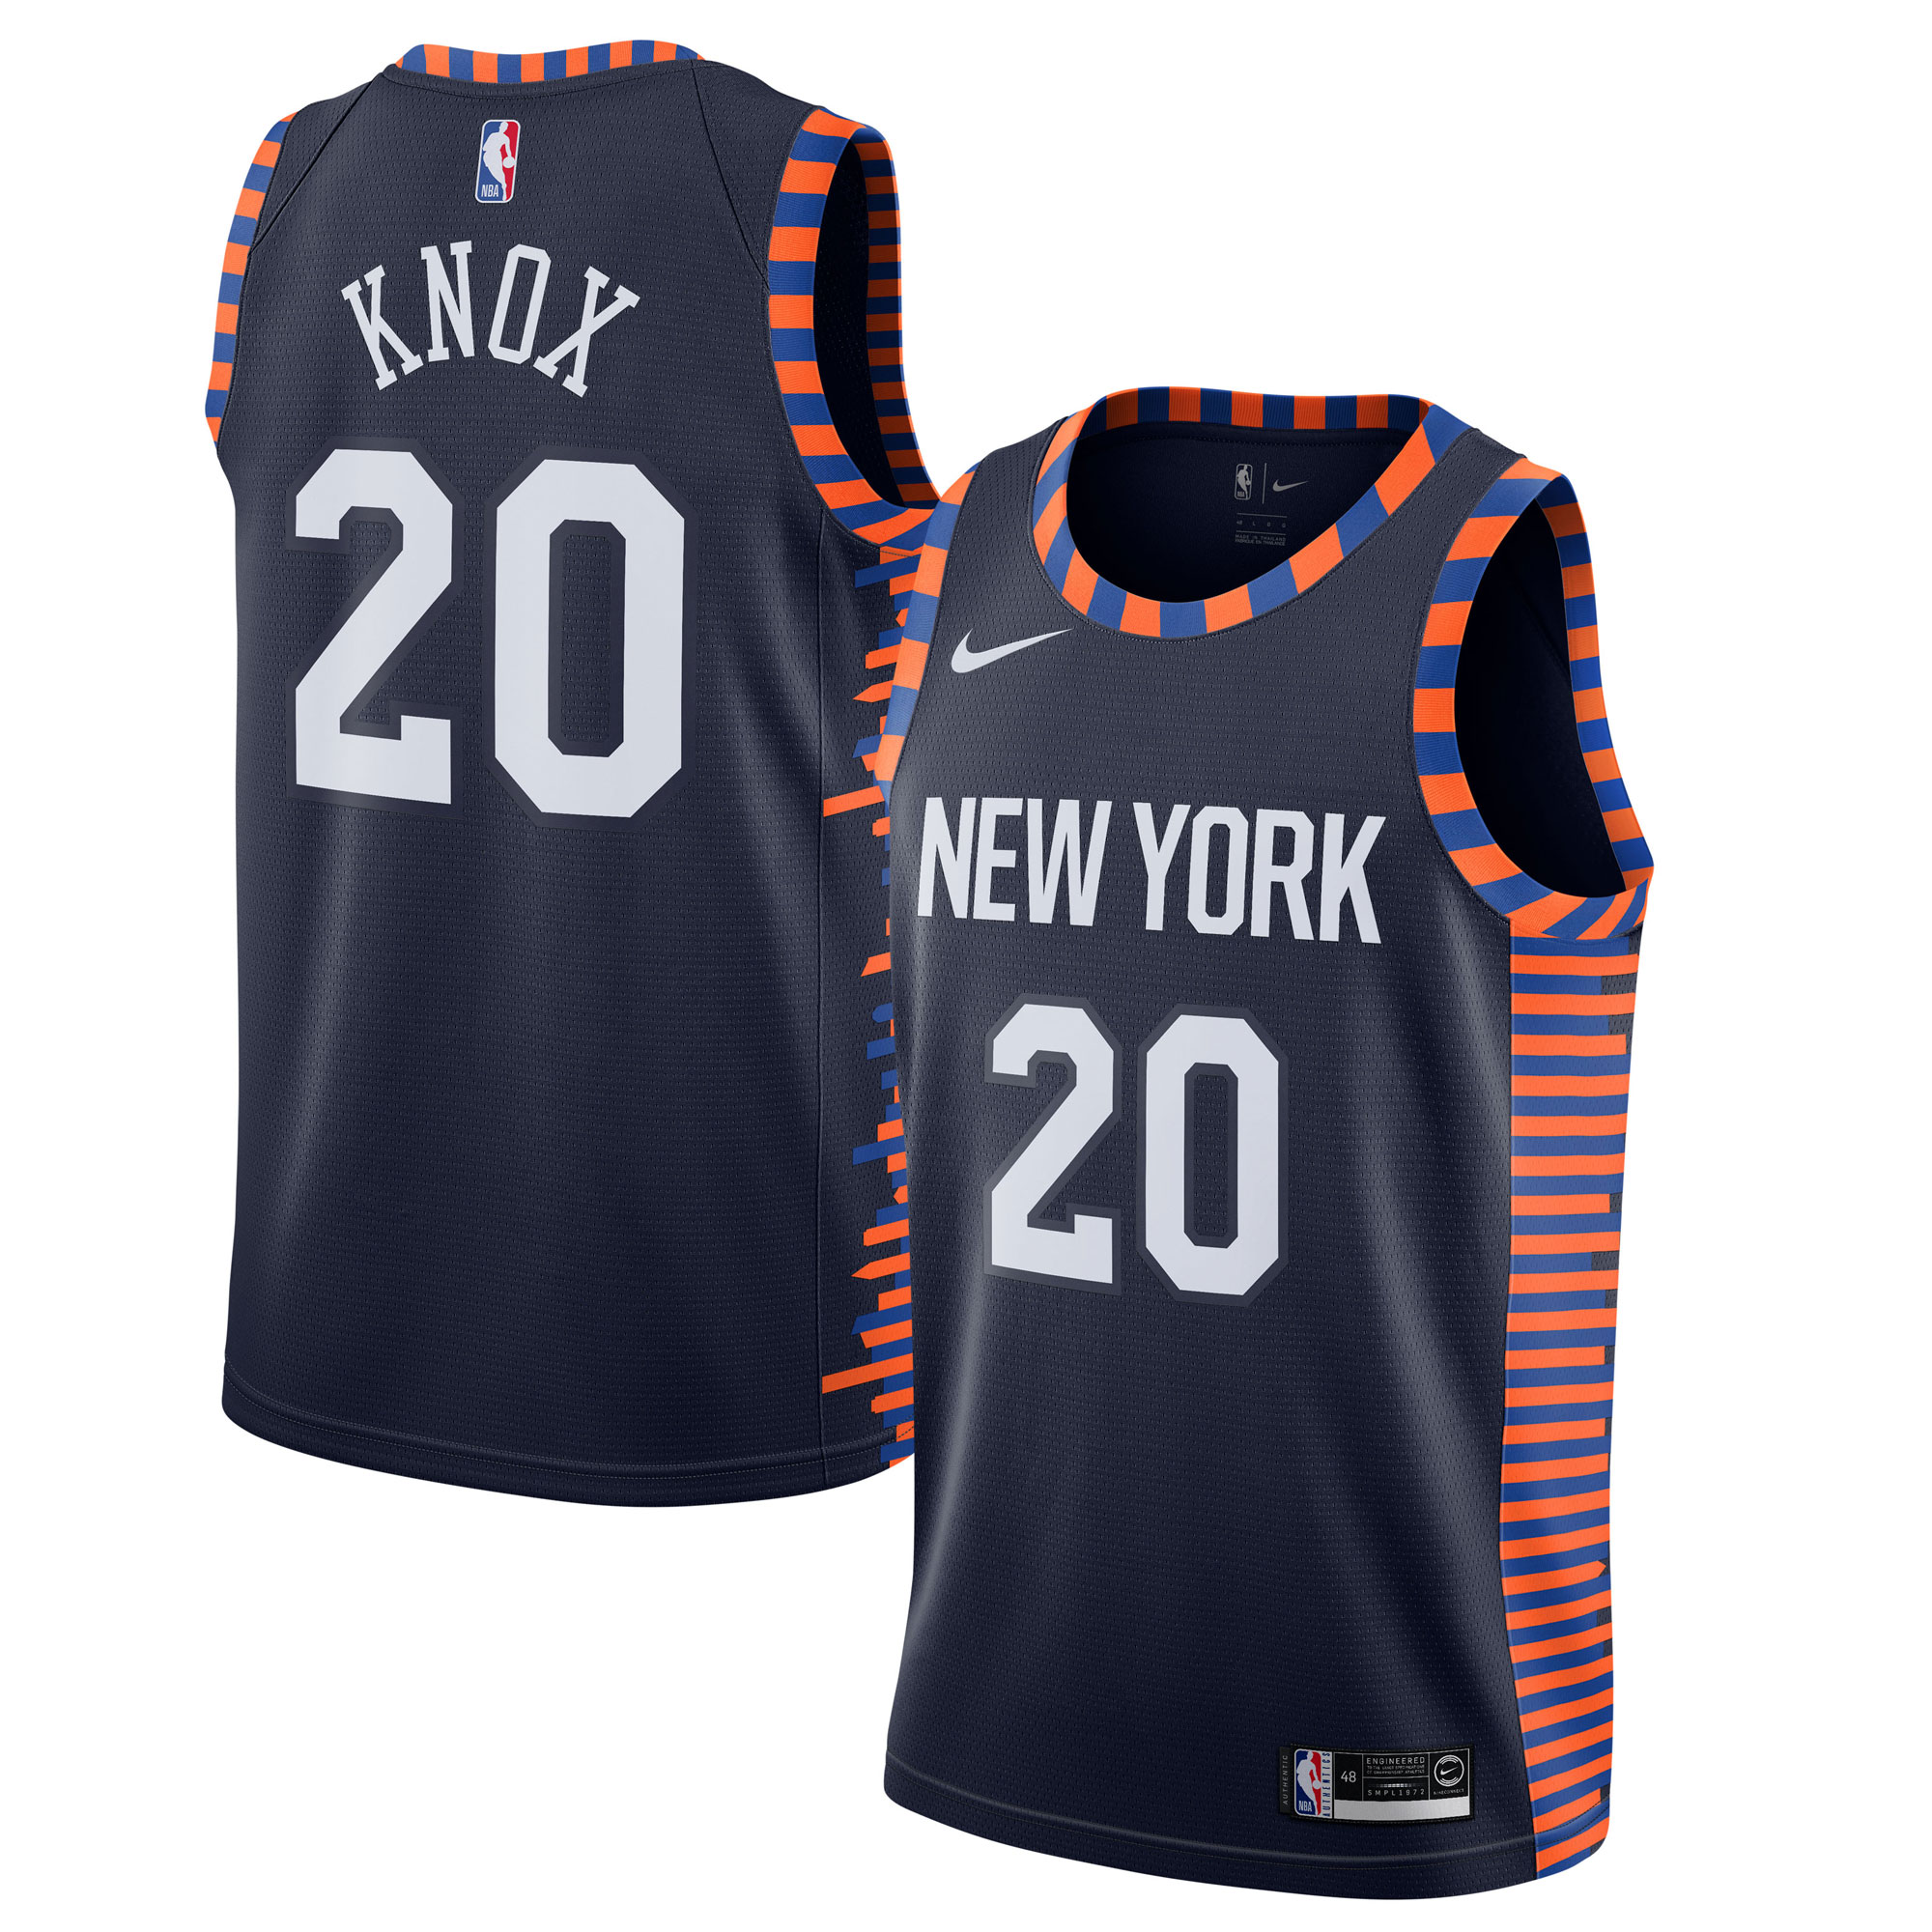 Kevin Knox II New York Knicks Nike 2019/20 Finished Swingman Jersey Navy - City Edition